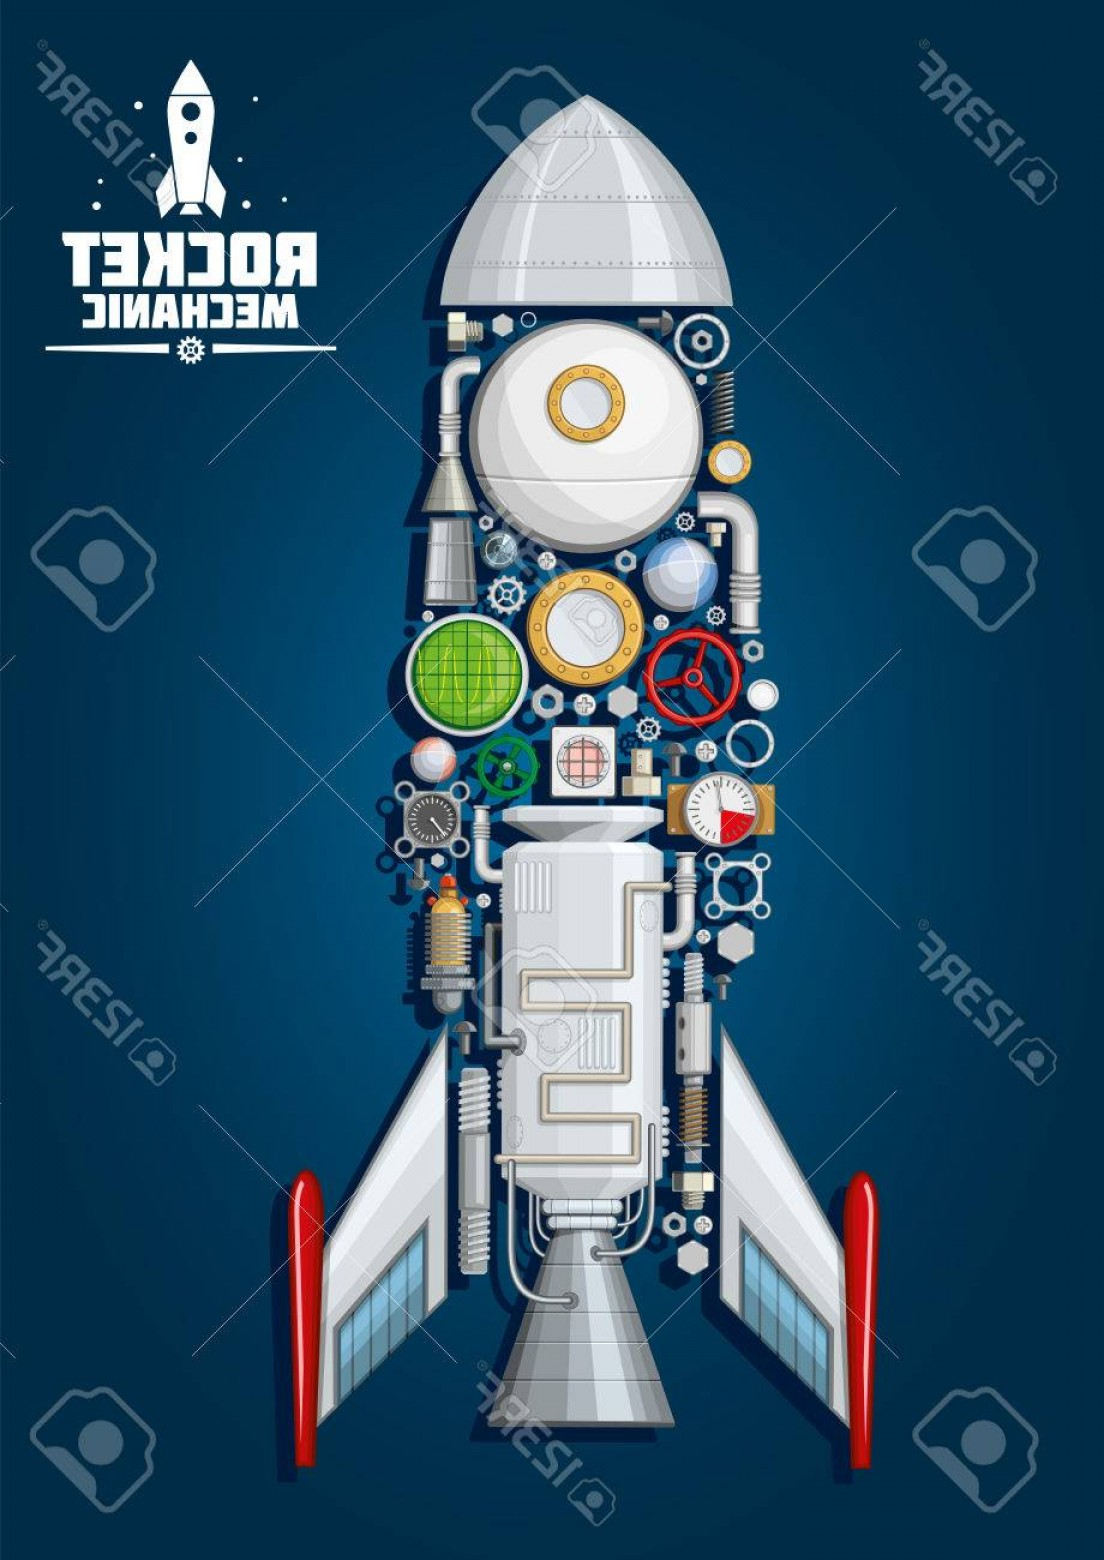 Vector Systems Fins: Photostock Vector Rocket Mechanics Symbol Of Modern Spaceship With Detailed Engine Parts And Body Structure Such As No